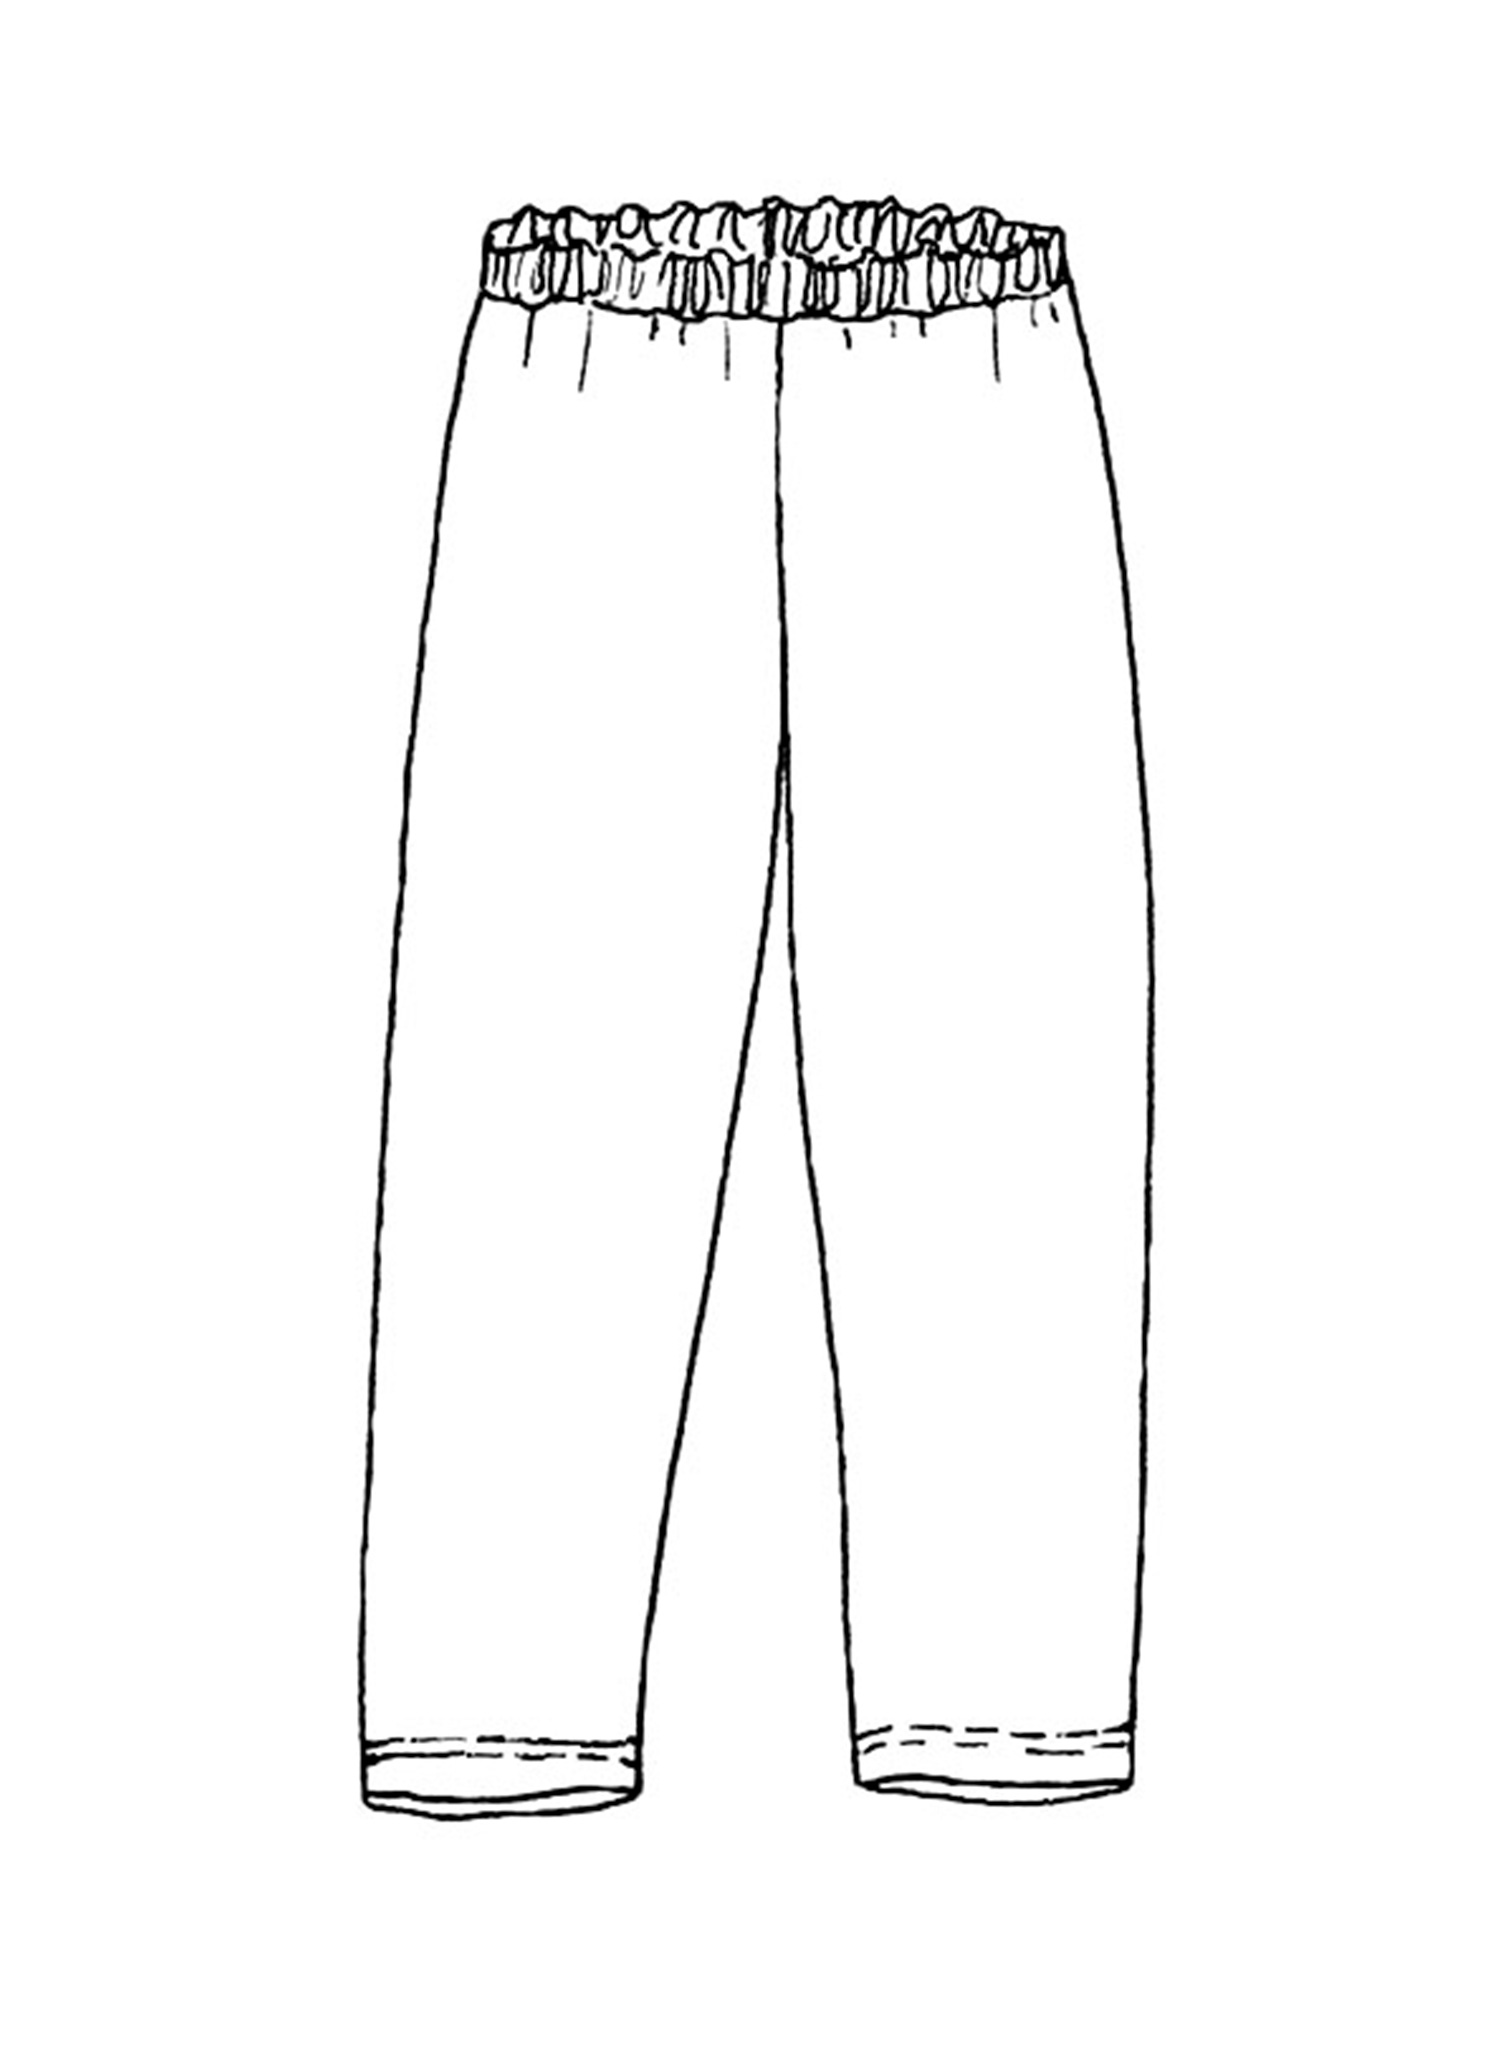 Leggings sketch image